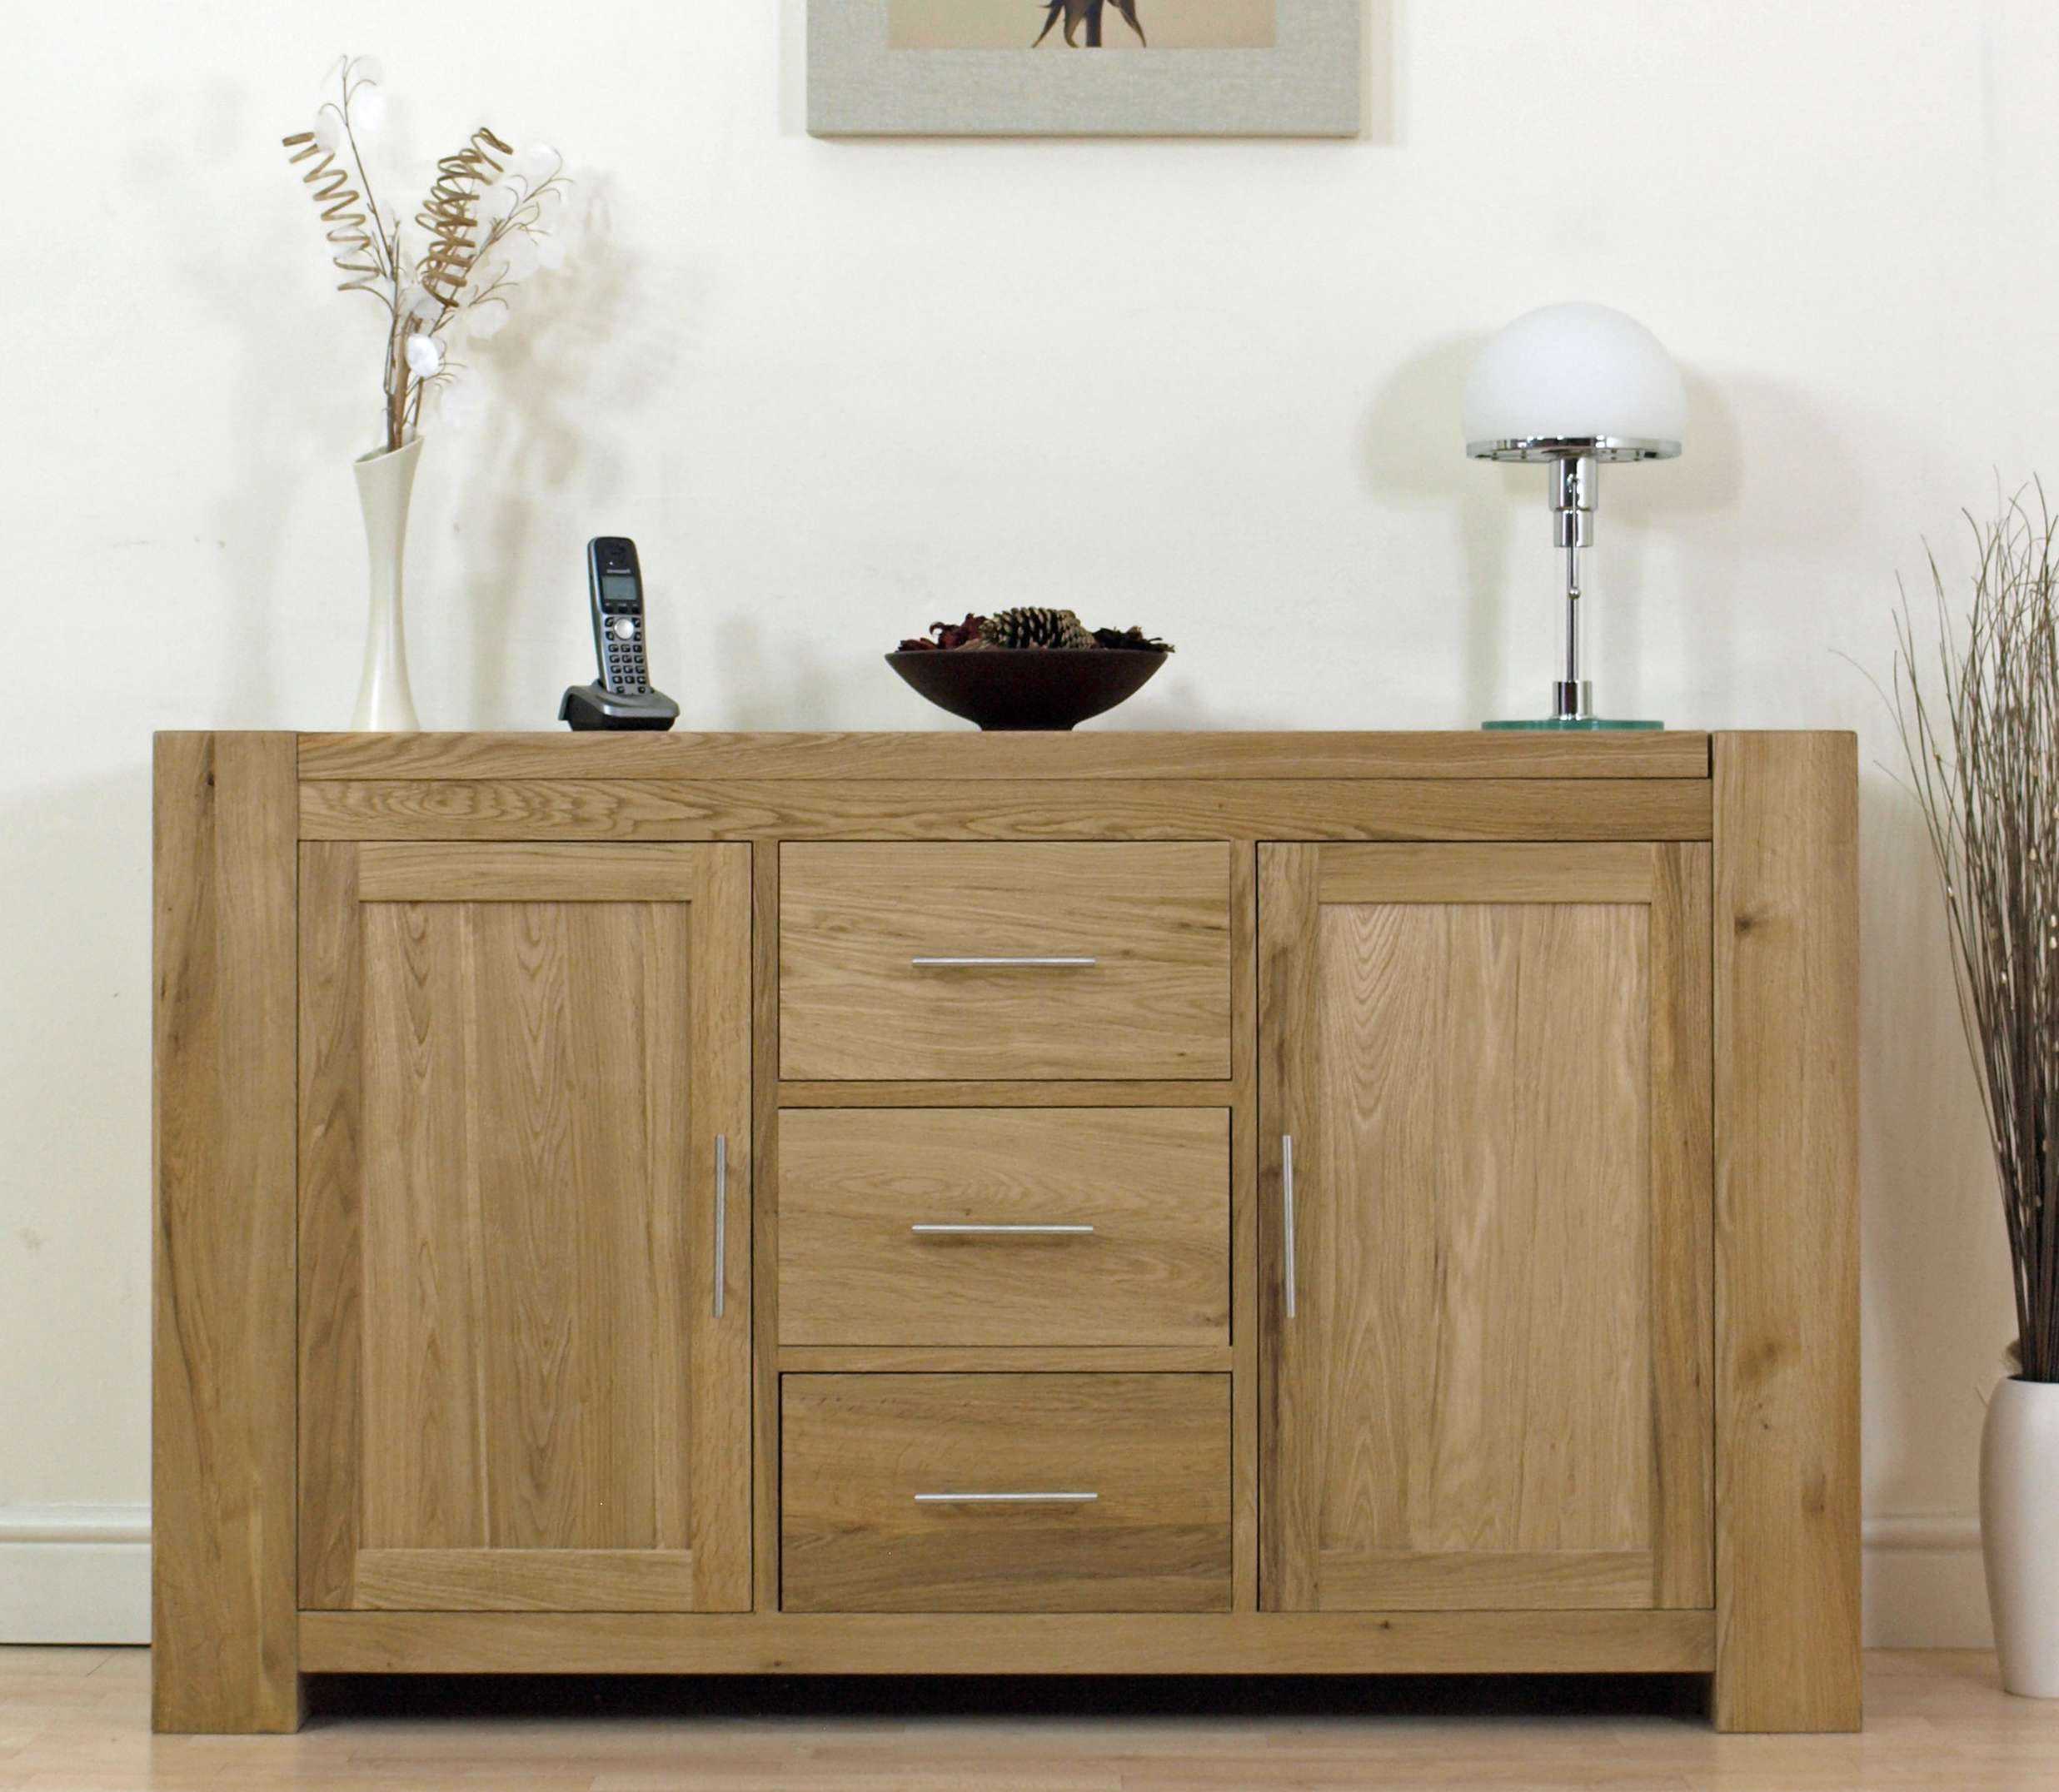 Solid Oak Sideboard Is Your First Choice Living Room Furniture – Hgnv With Living Room Sideboards (View 17 of 20)